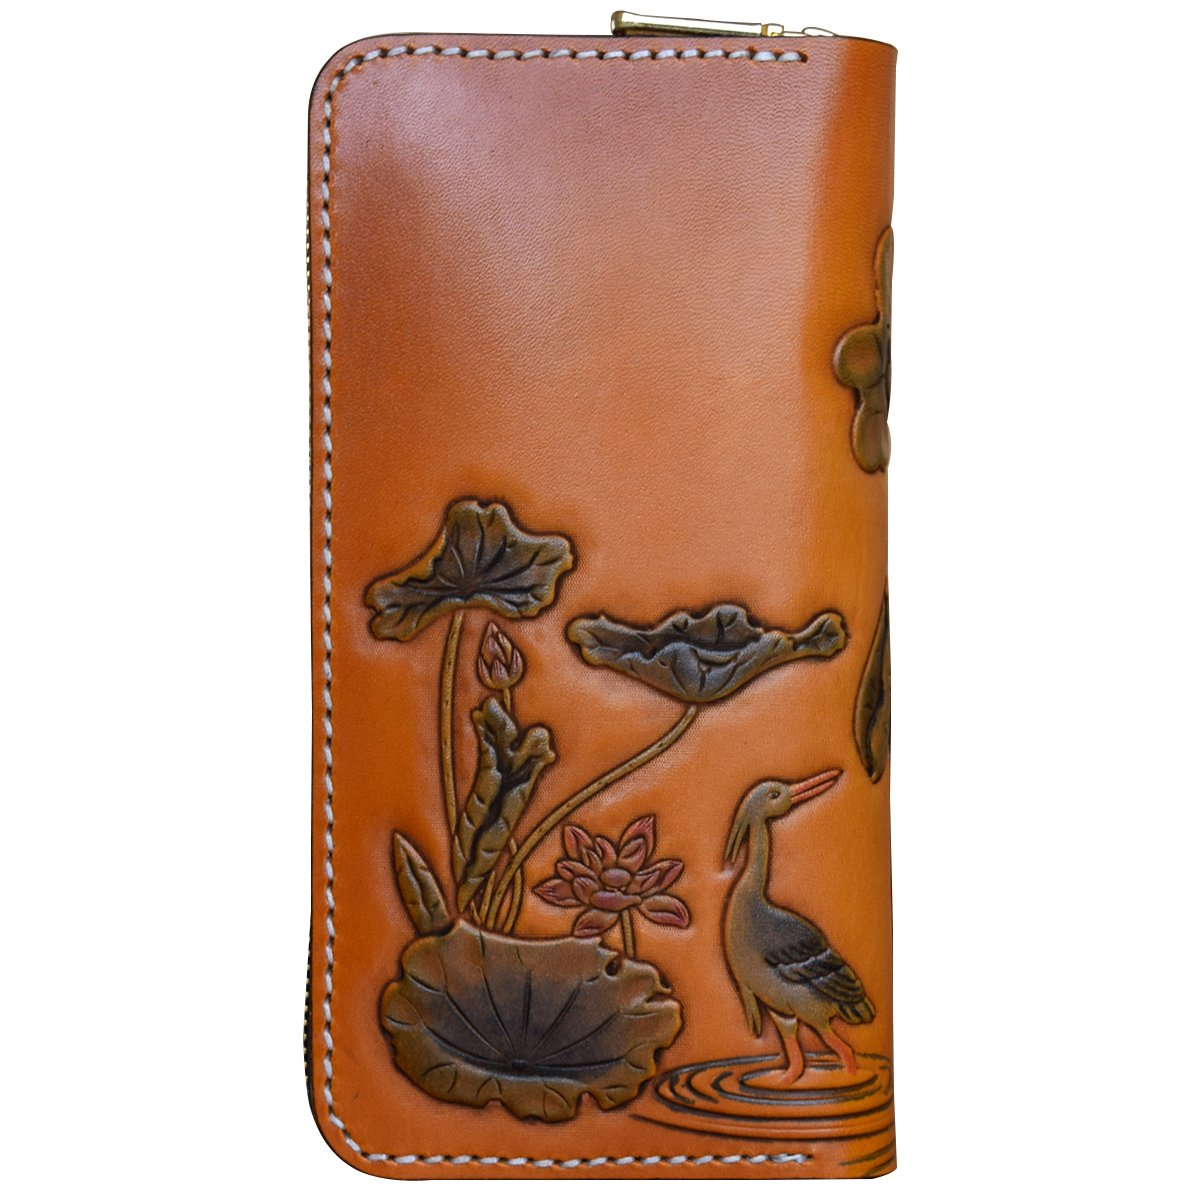 OLG.YAT Vegetable tanned leather Retro Genuine Leather Men's Wallets WL22ZH by OLG.YAT